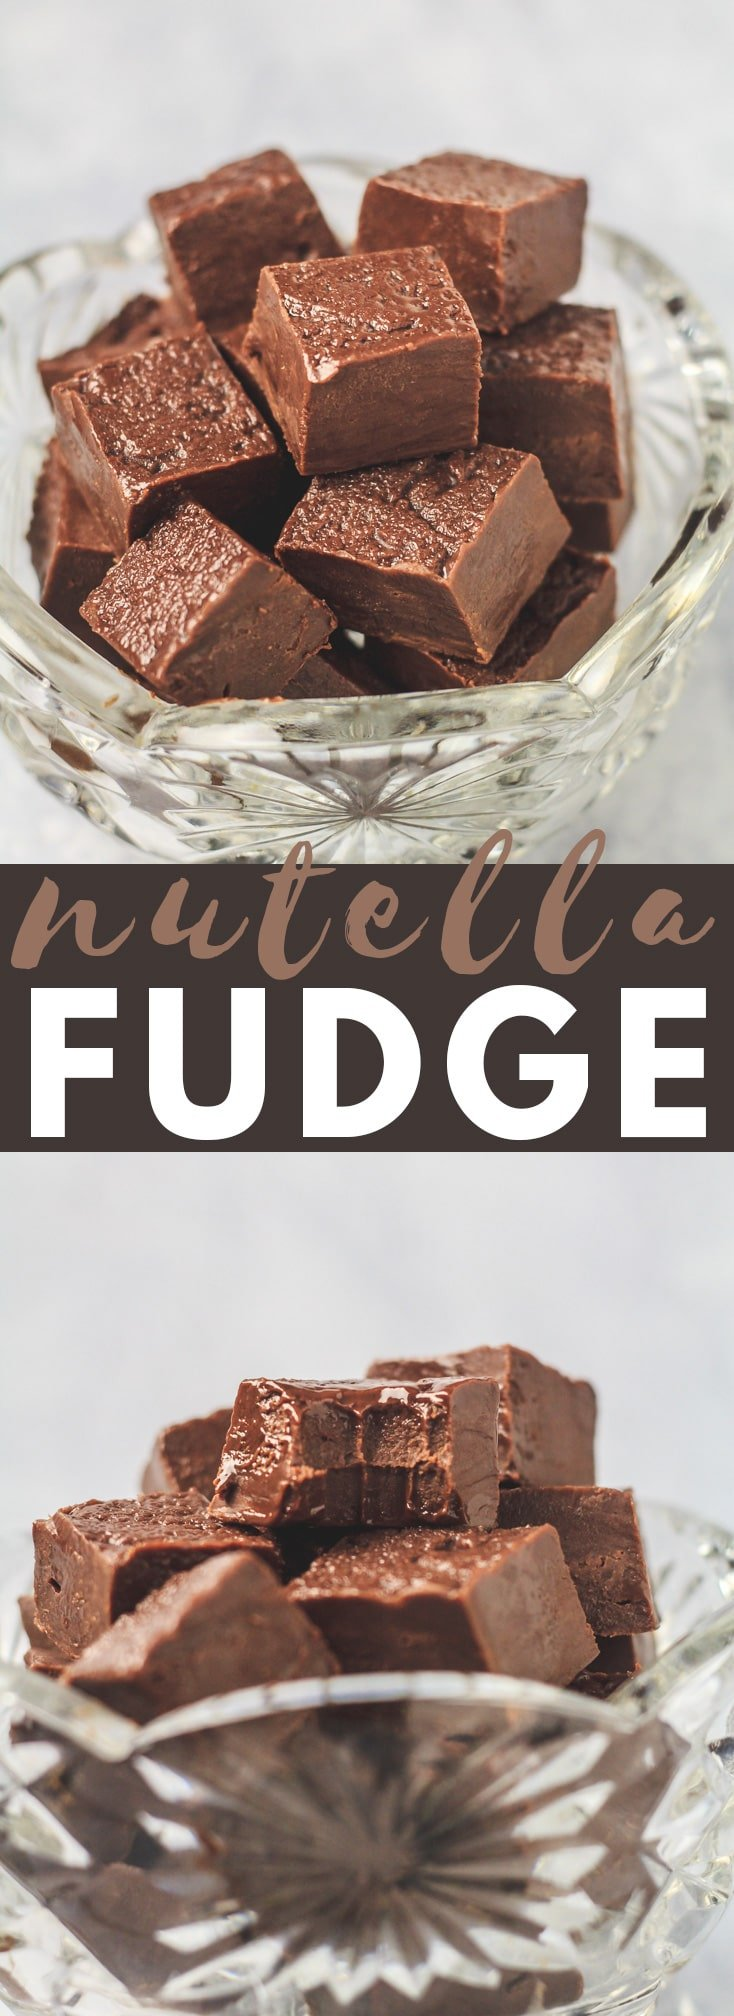 Nutella Fudge - Deliciously rich and creamy chocolate fudge that is LOADED with Nutella flavour. Made in the microwave, and only requires 4 simple ingredients! #chocolate #nutella #fudge #nobake